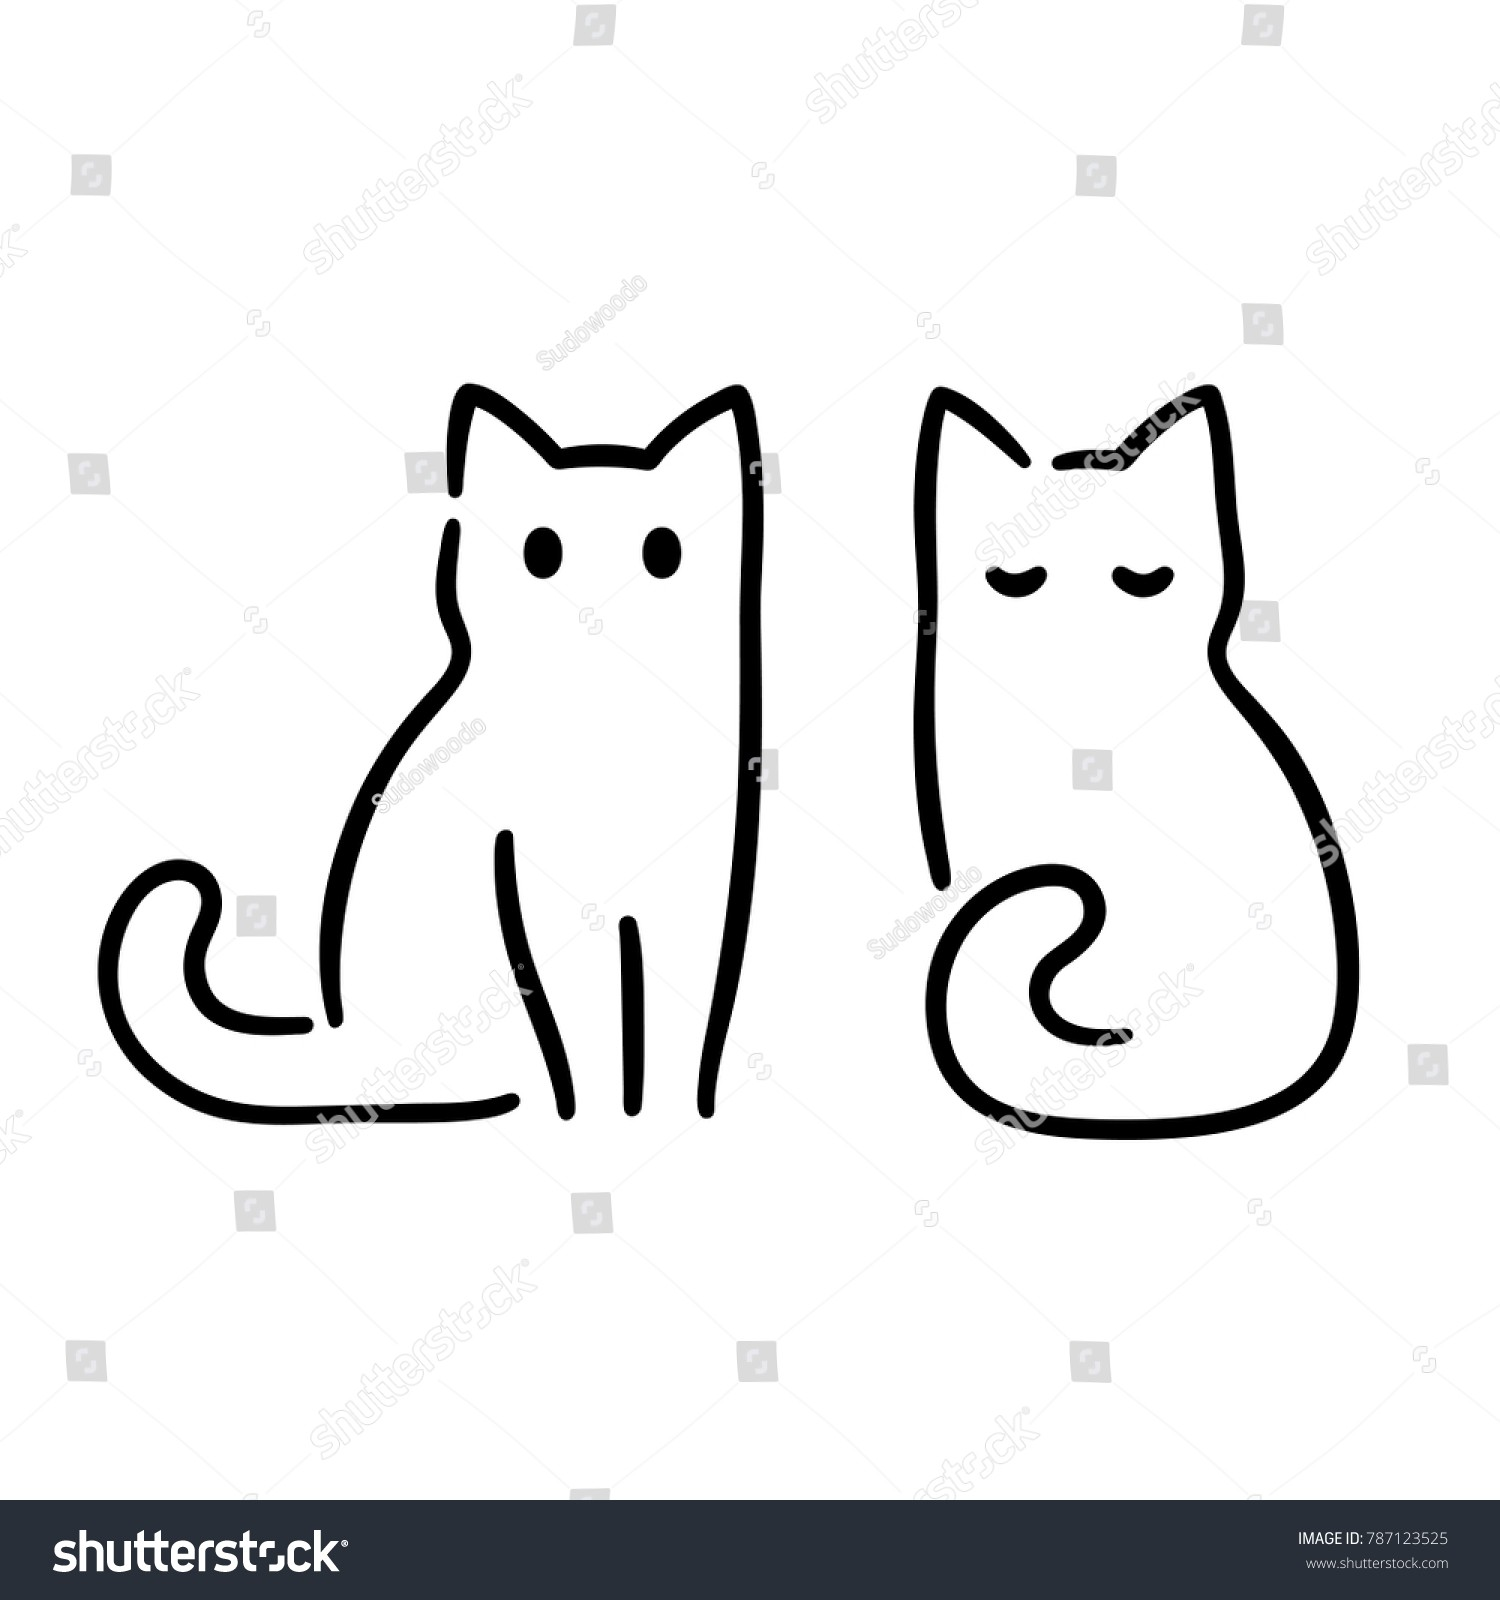 1500x1600 Simple Cat Drawing New Simple Minimal Cat Ink Drawing Two Stock